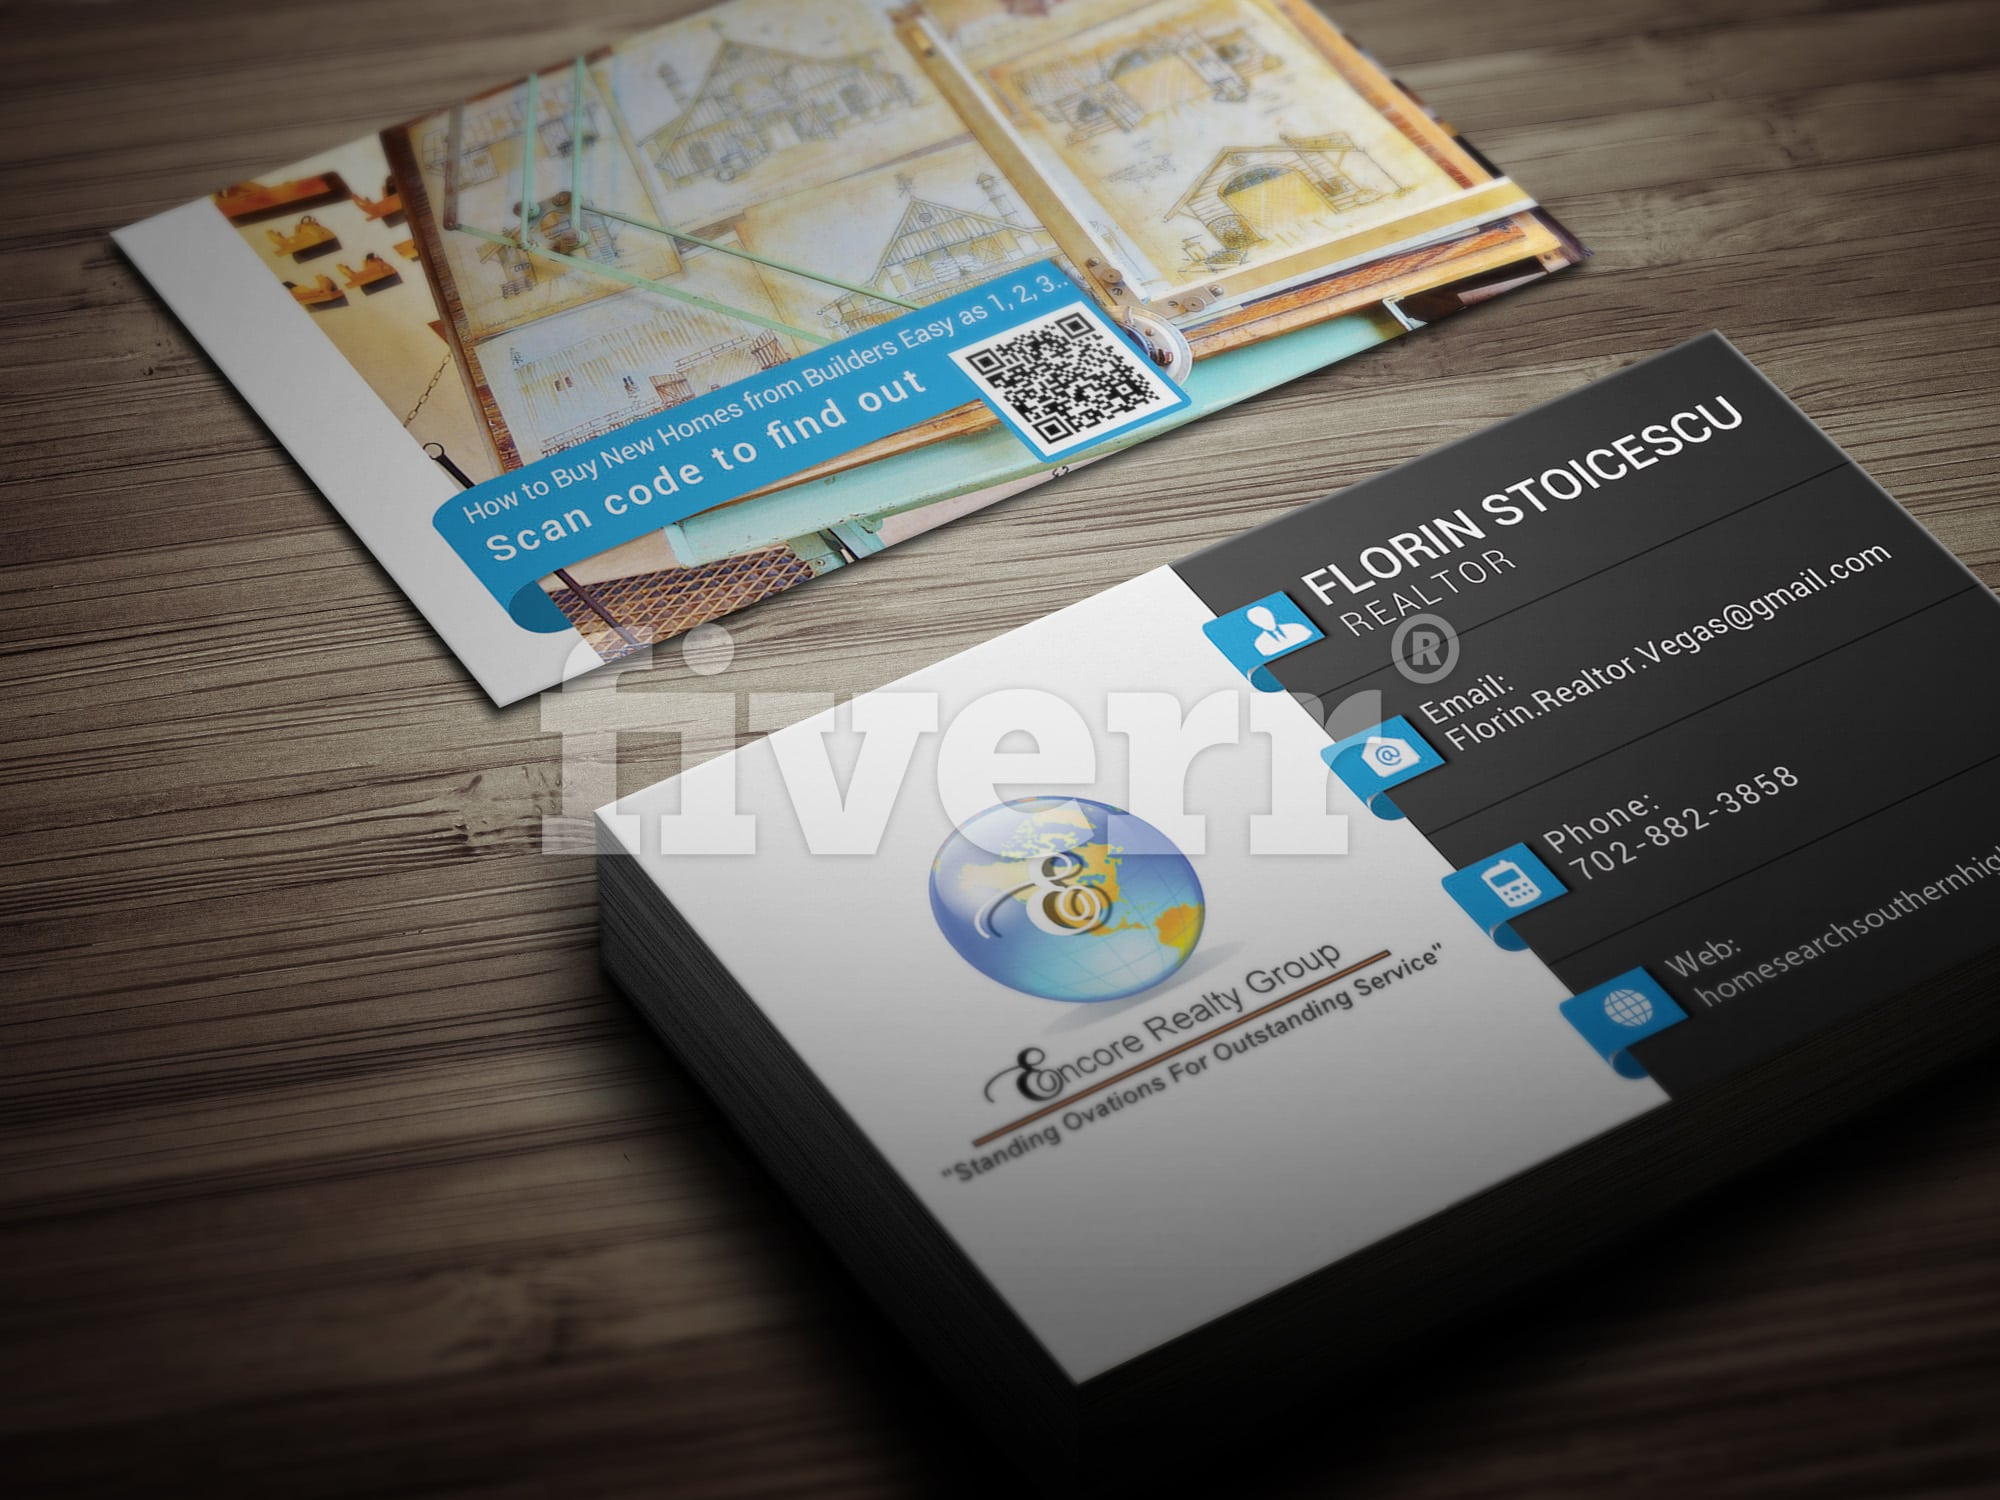 Design an outstanding business card in less than 48 hours by design an outstanding business card in less than 48 hours by primedesigns56 reheart Image collections